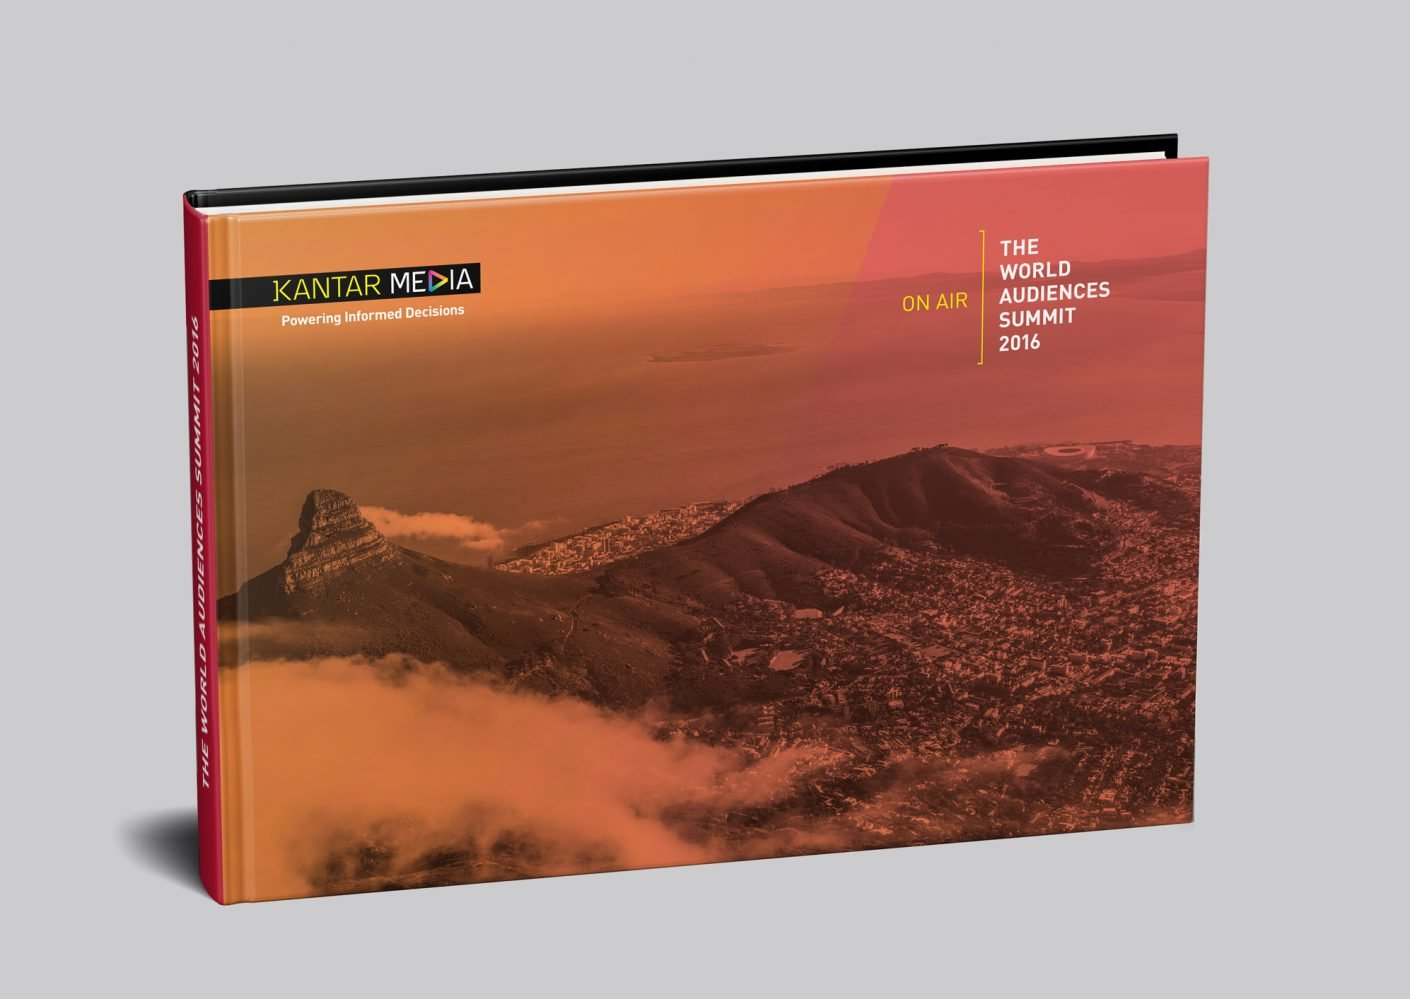 Kantar Media World Audiences Summit 2016 handbook cover